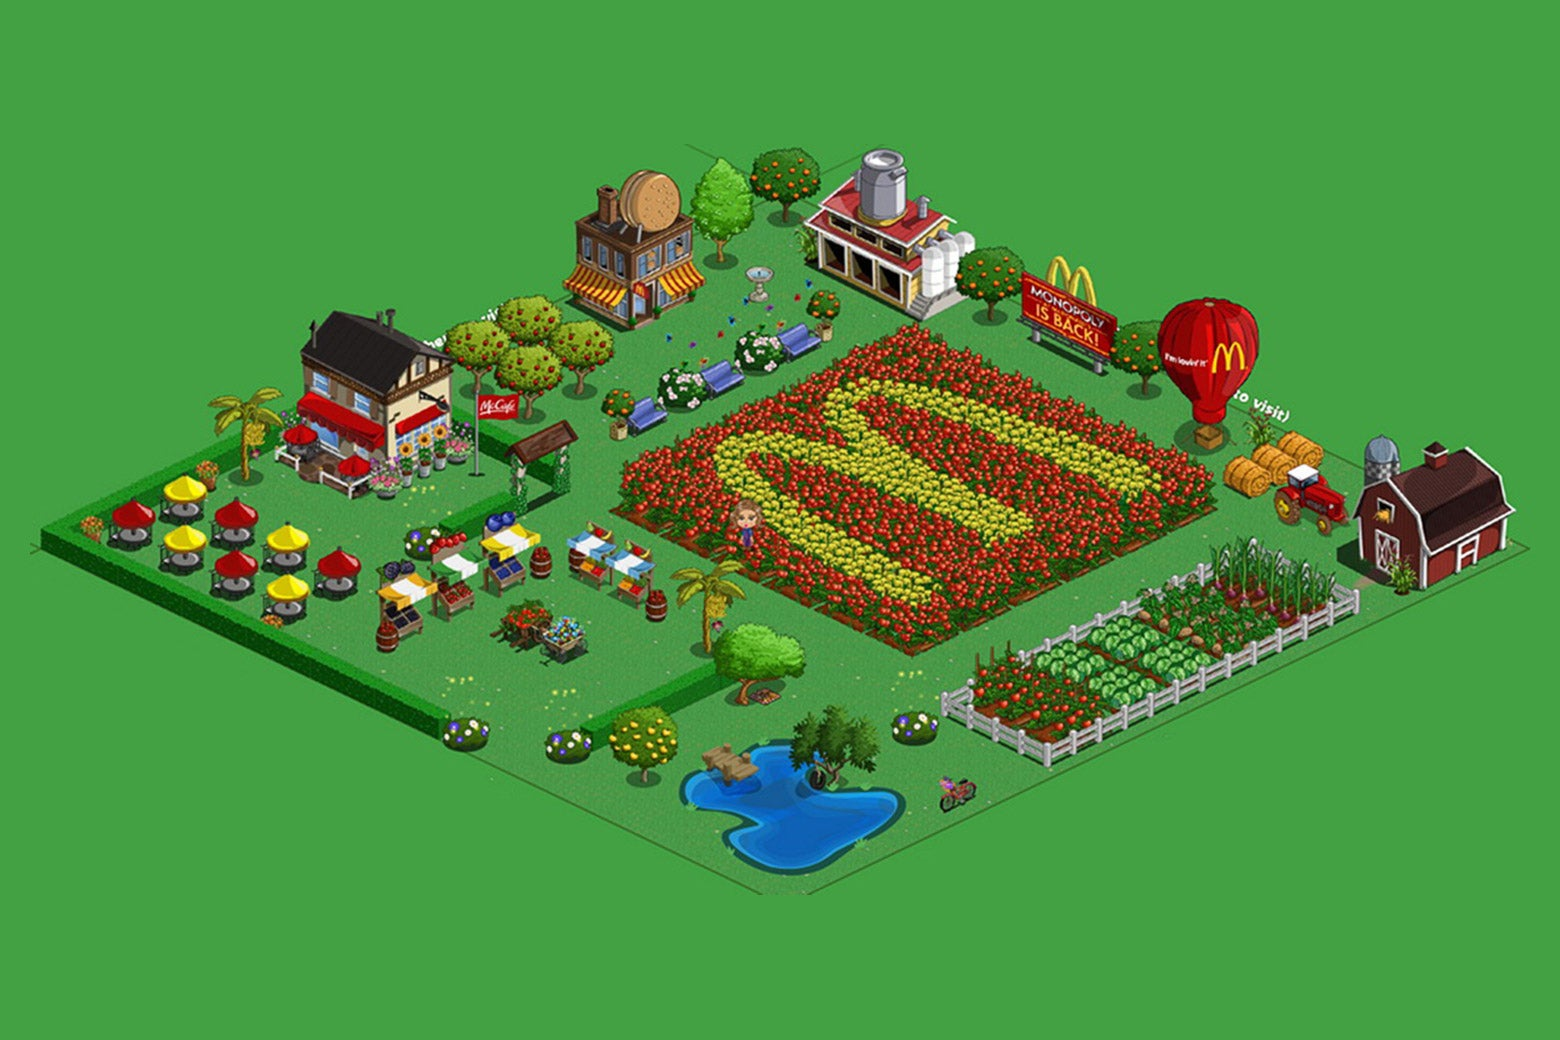 A screenshot of a McDonald's-themed farm in Farmville.